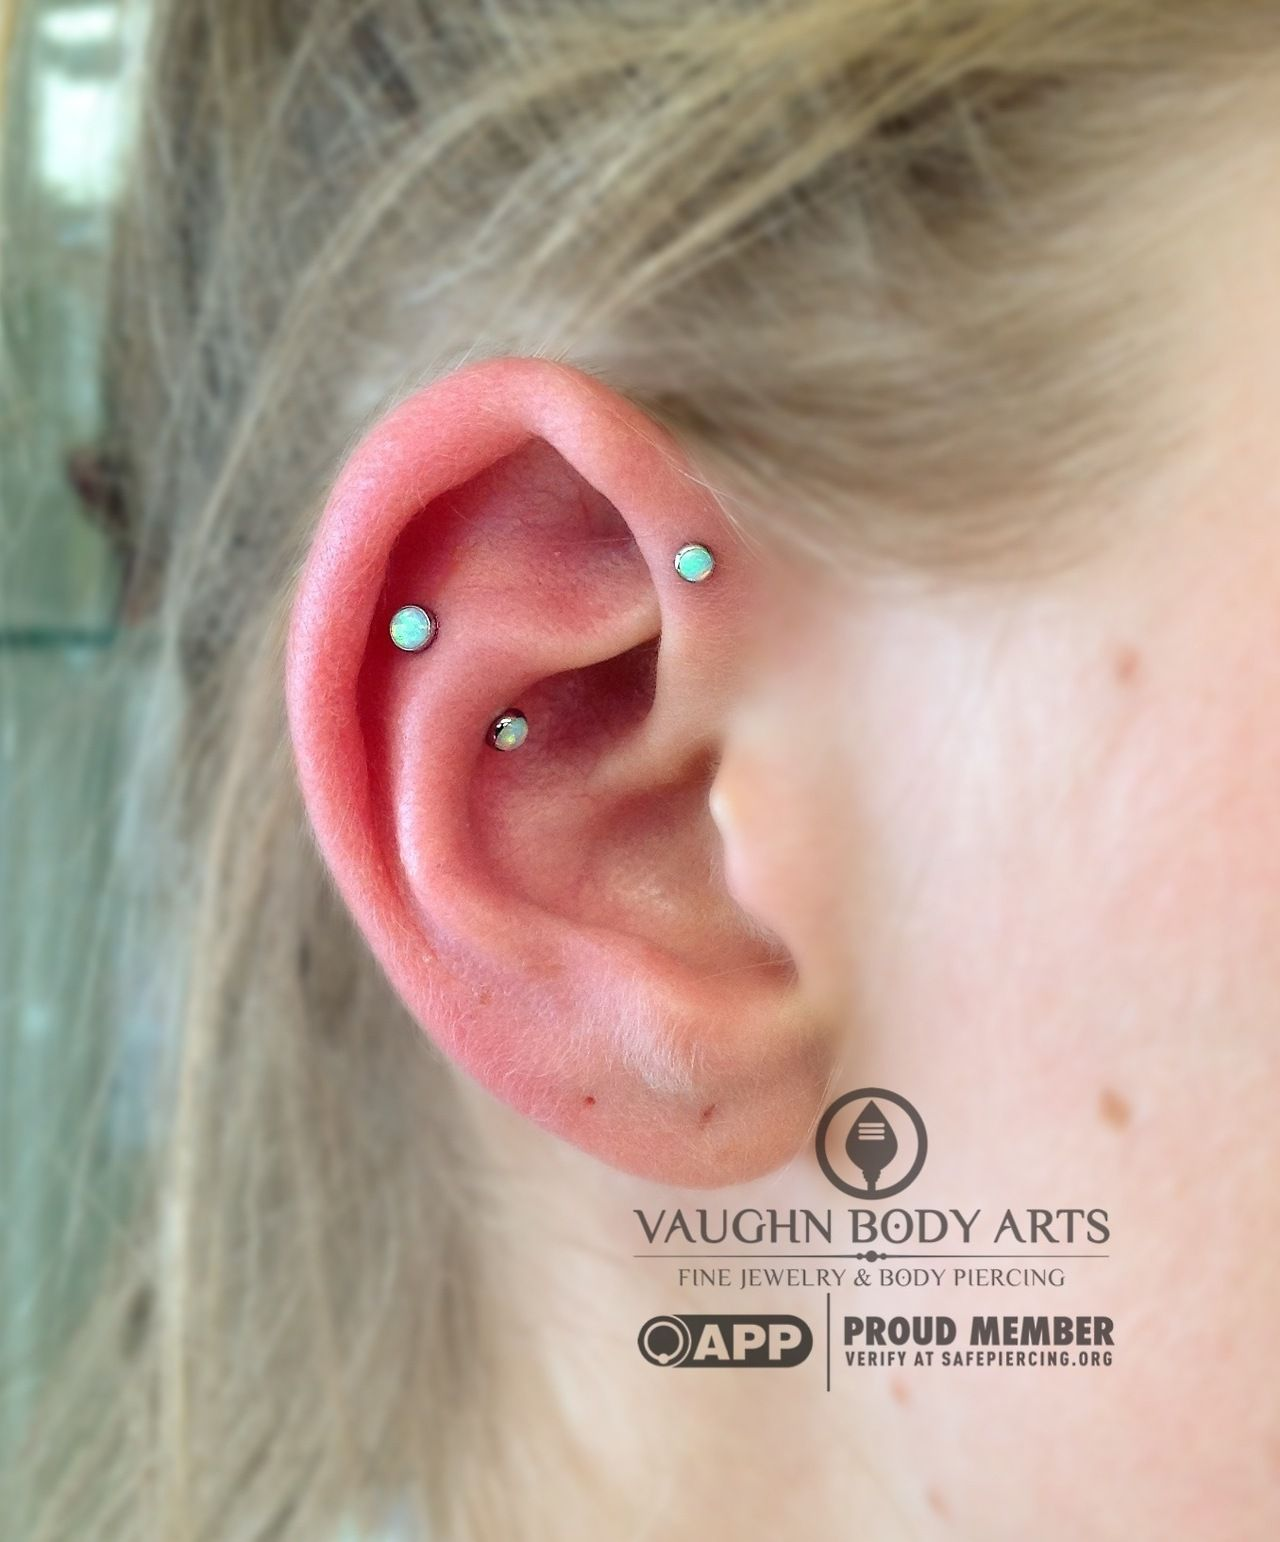 3mm nose piercing  Rebecca stopped in for a forward helix and fauxsnug piercing She